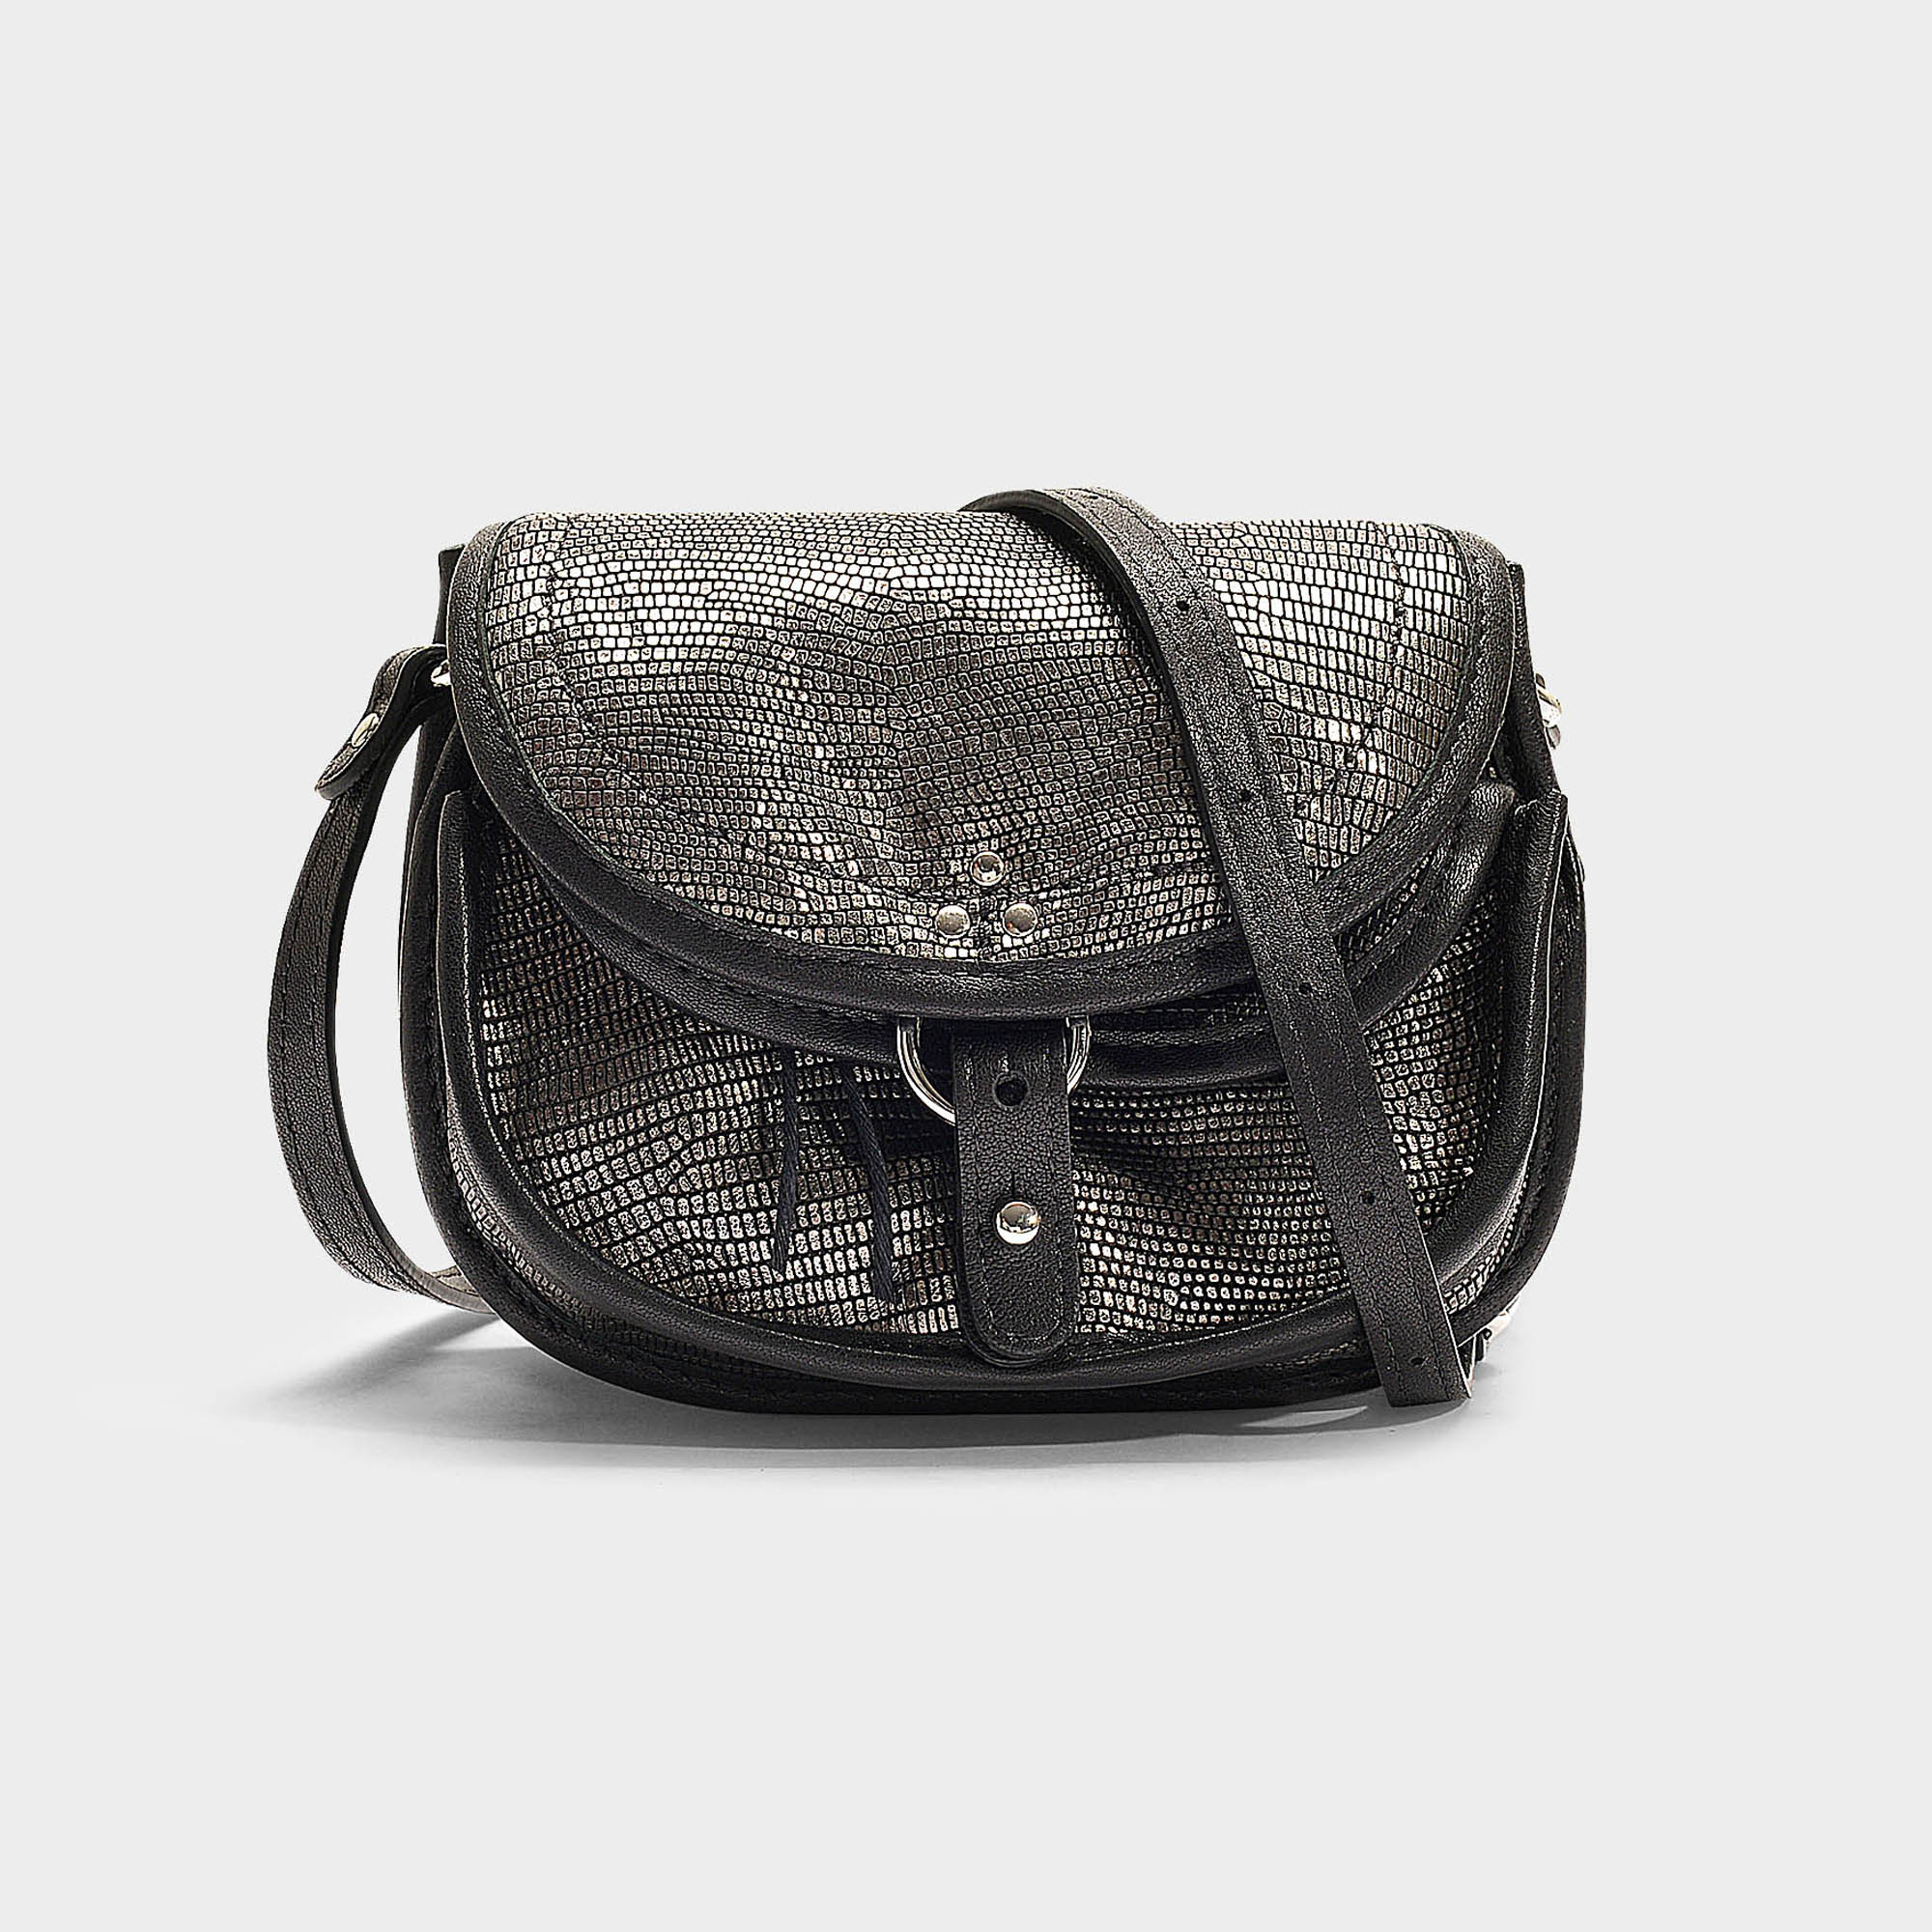 Jérôme Dreyfuss Felix Mini Bag In Metallic Lambskin Modesens